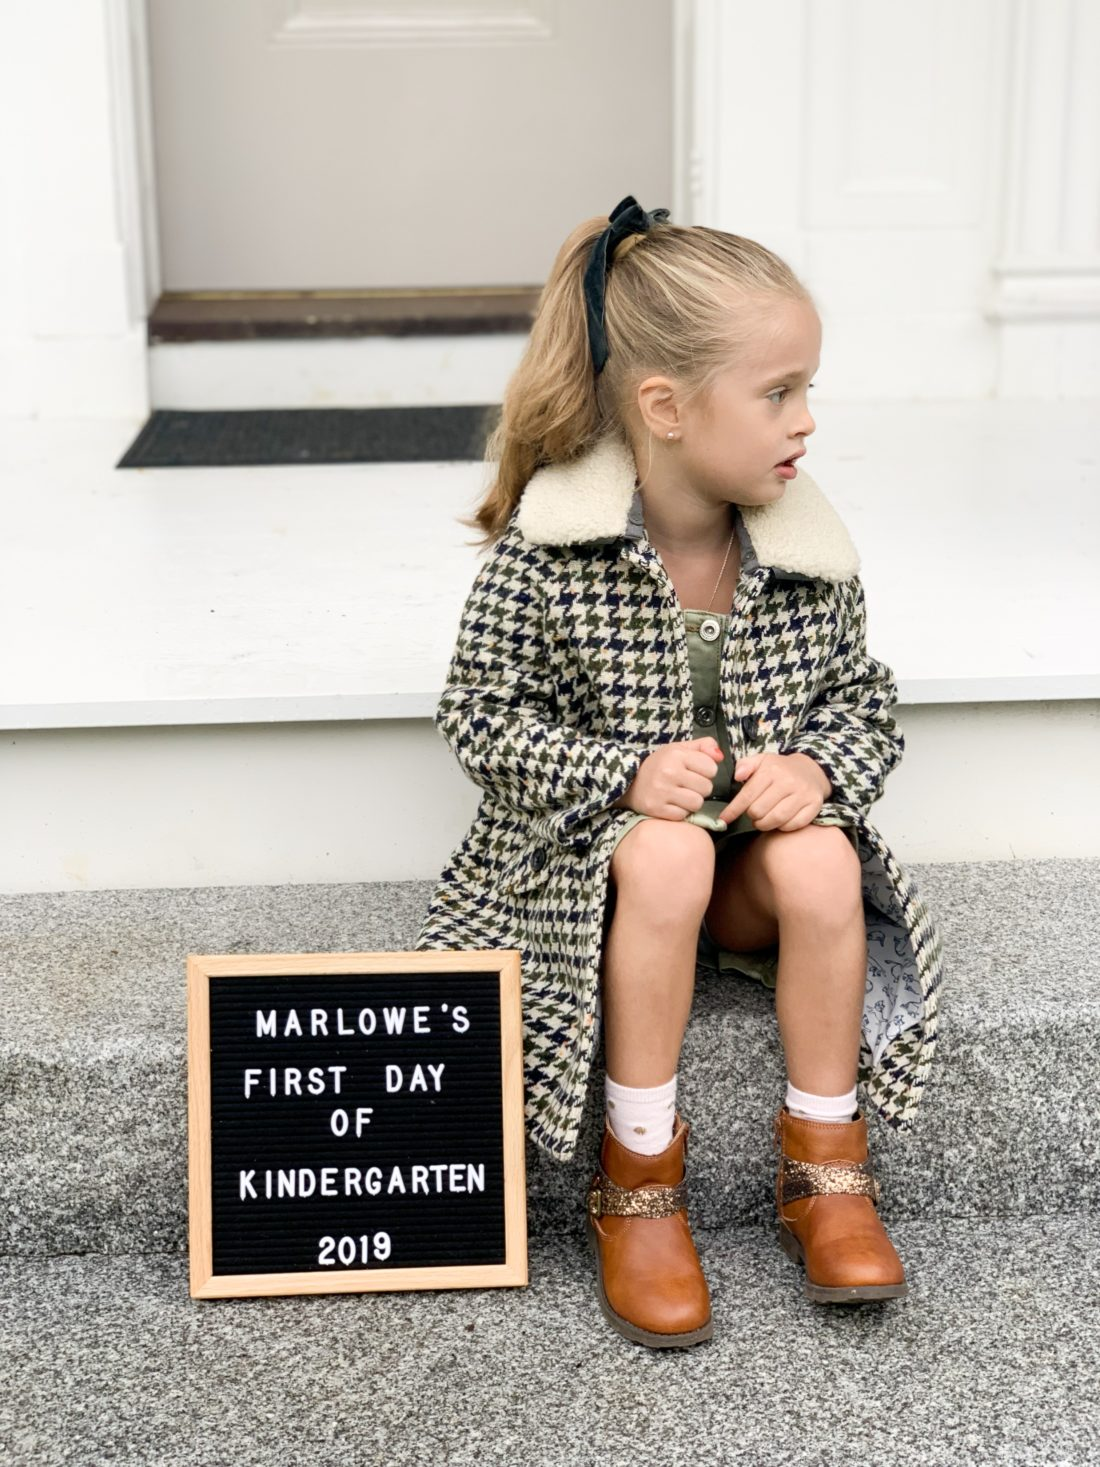 Marlowe Martino on her first day of Kindergarten